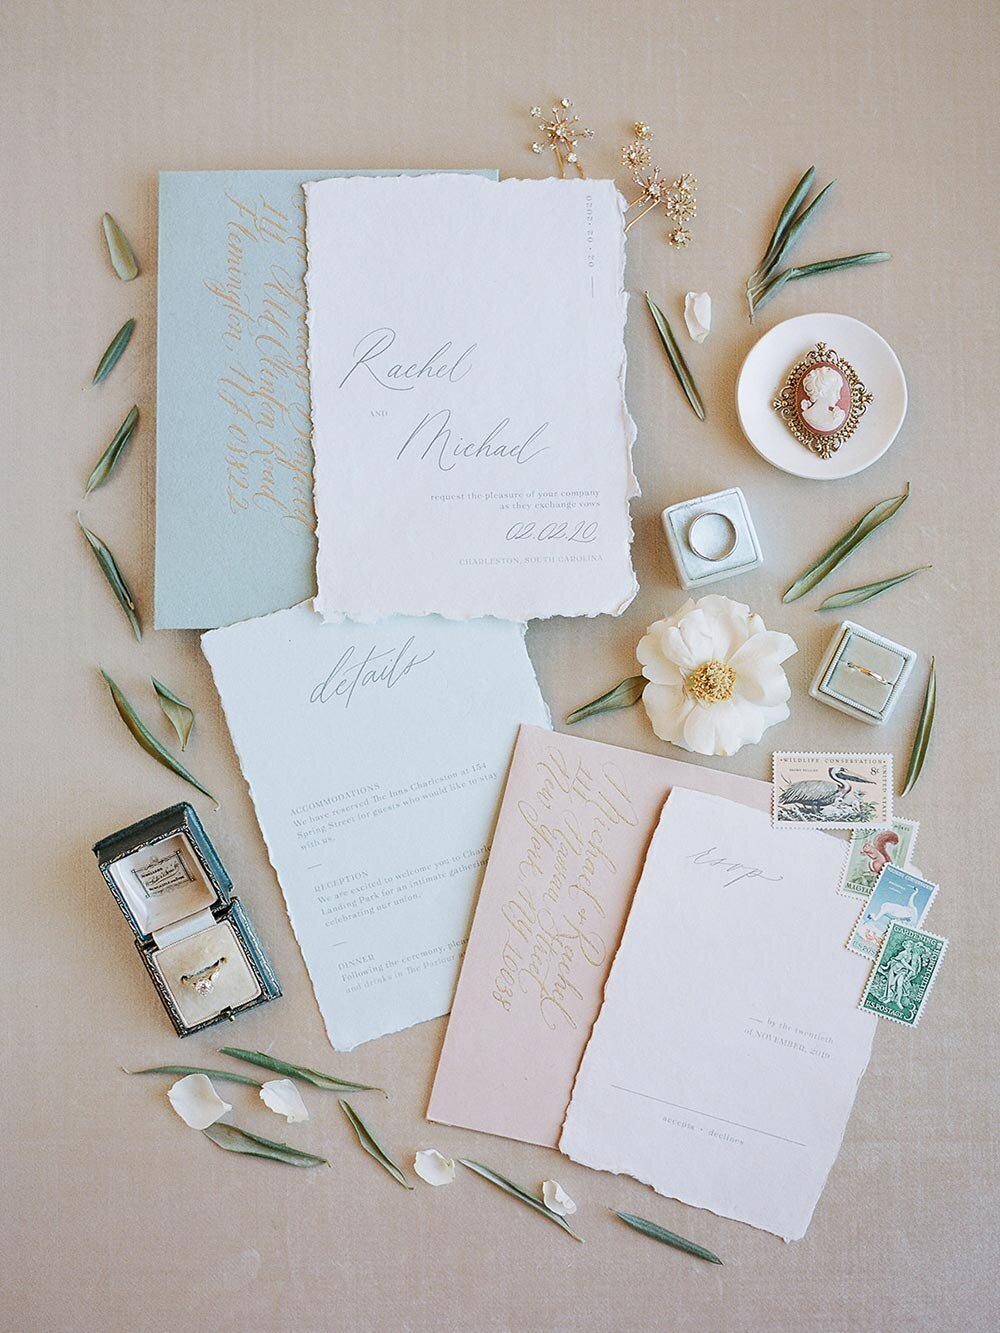 Wedding invites written in calligraphy surrounded by flowers, vintage rings and stamps